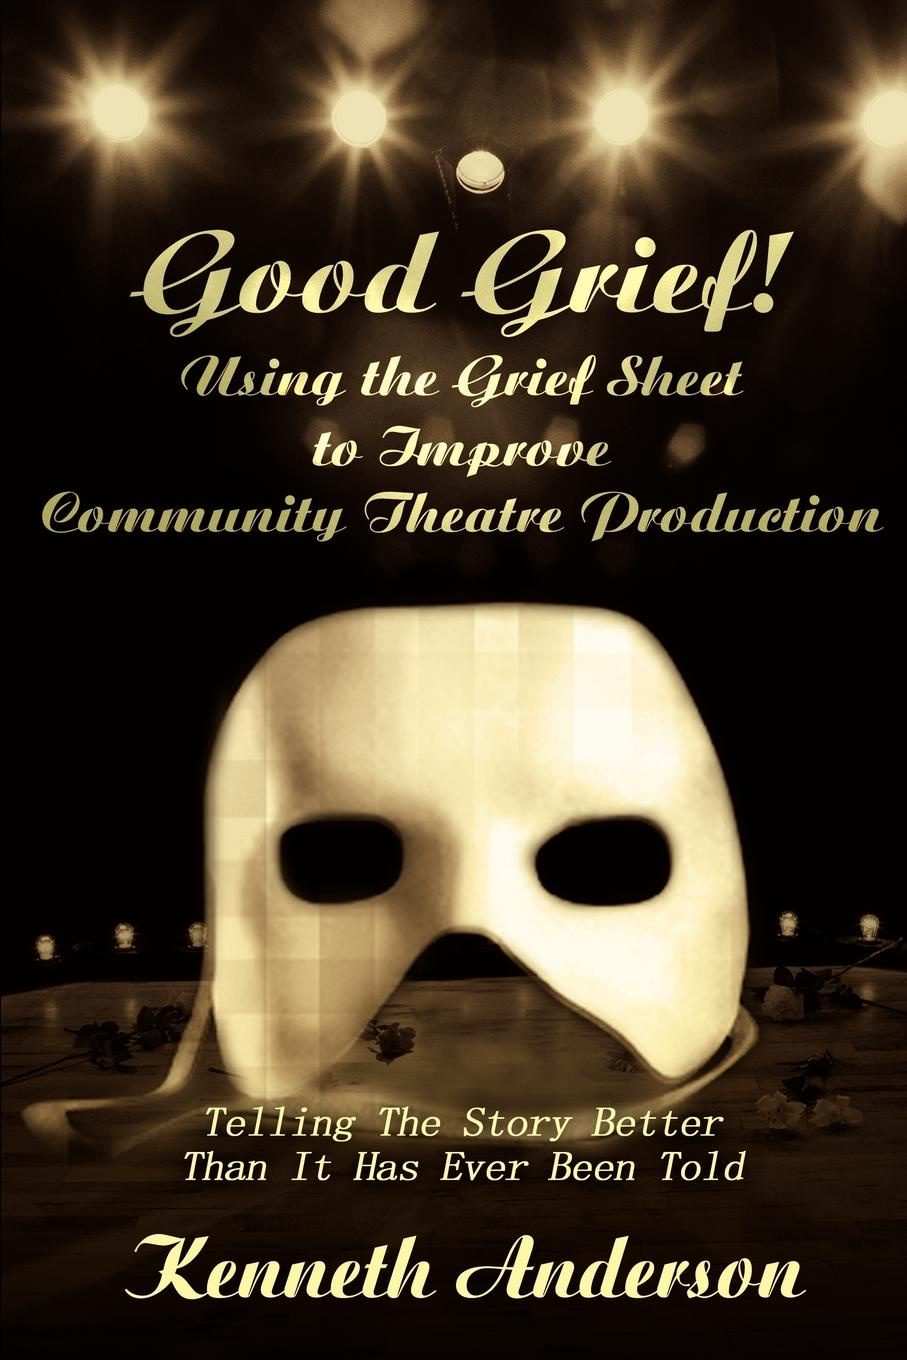 Kenneth F. Anderson Good Grief! Using the Grief Sheet to Improve Community Theatre Production. Telling The Story Better Than It Has Ever Been Told